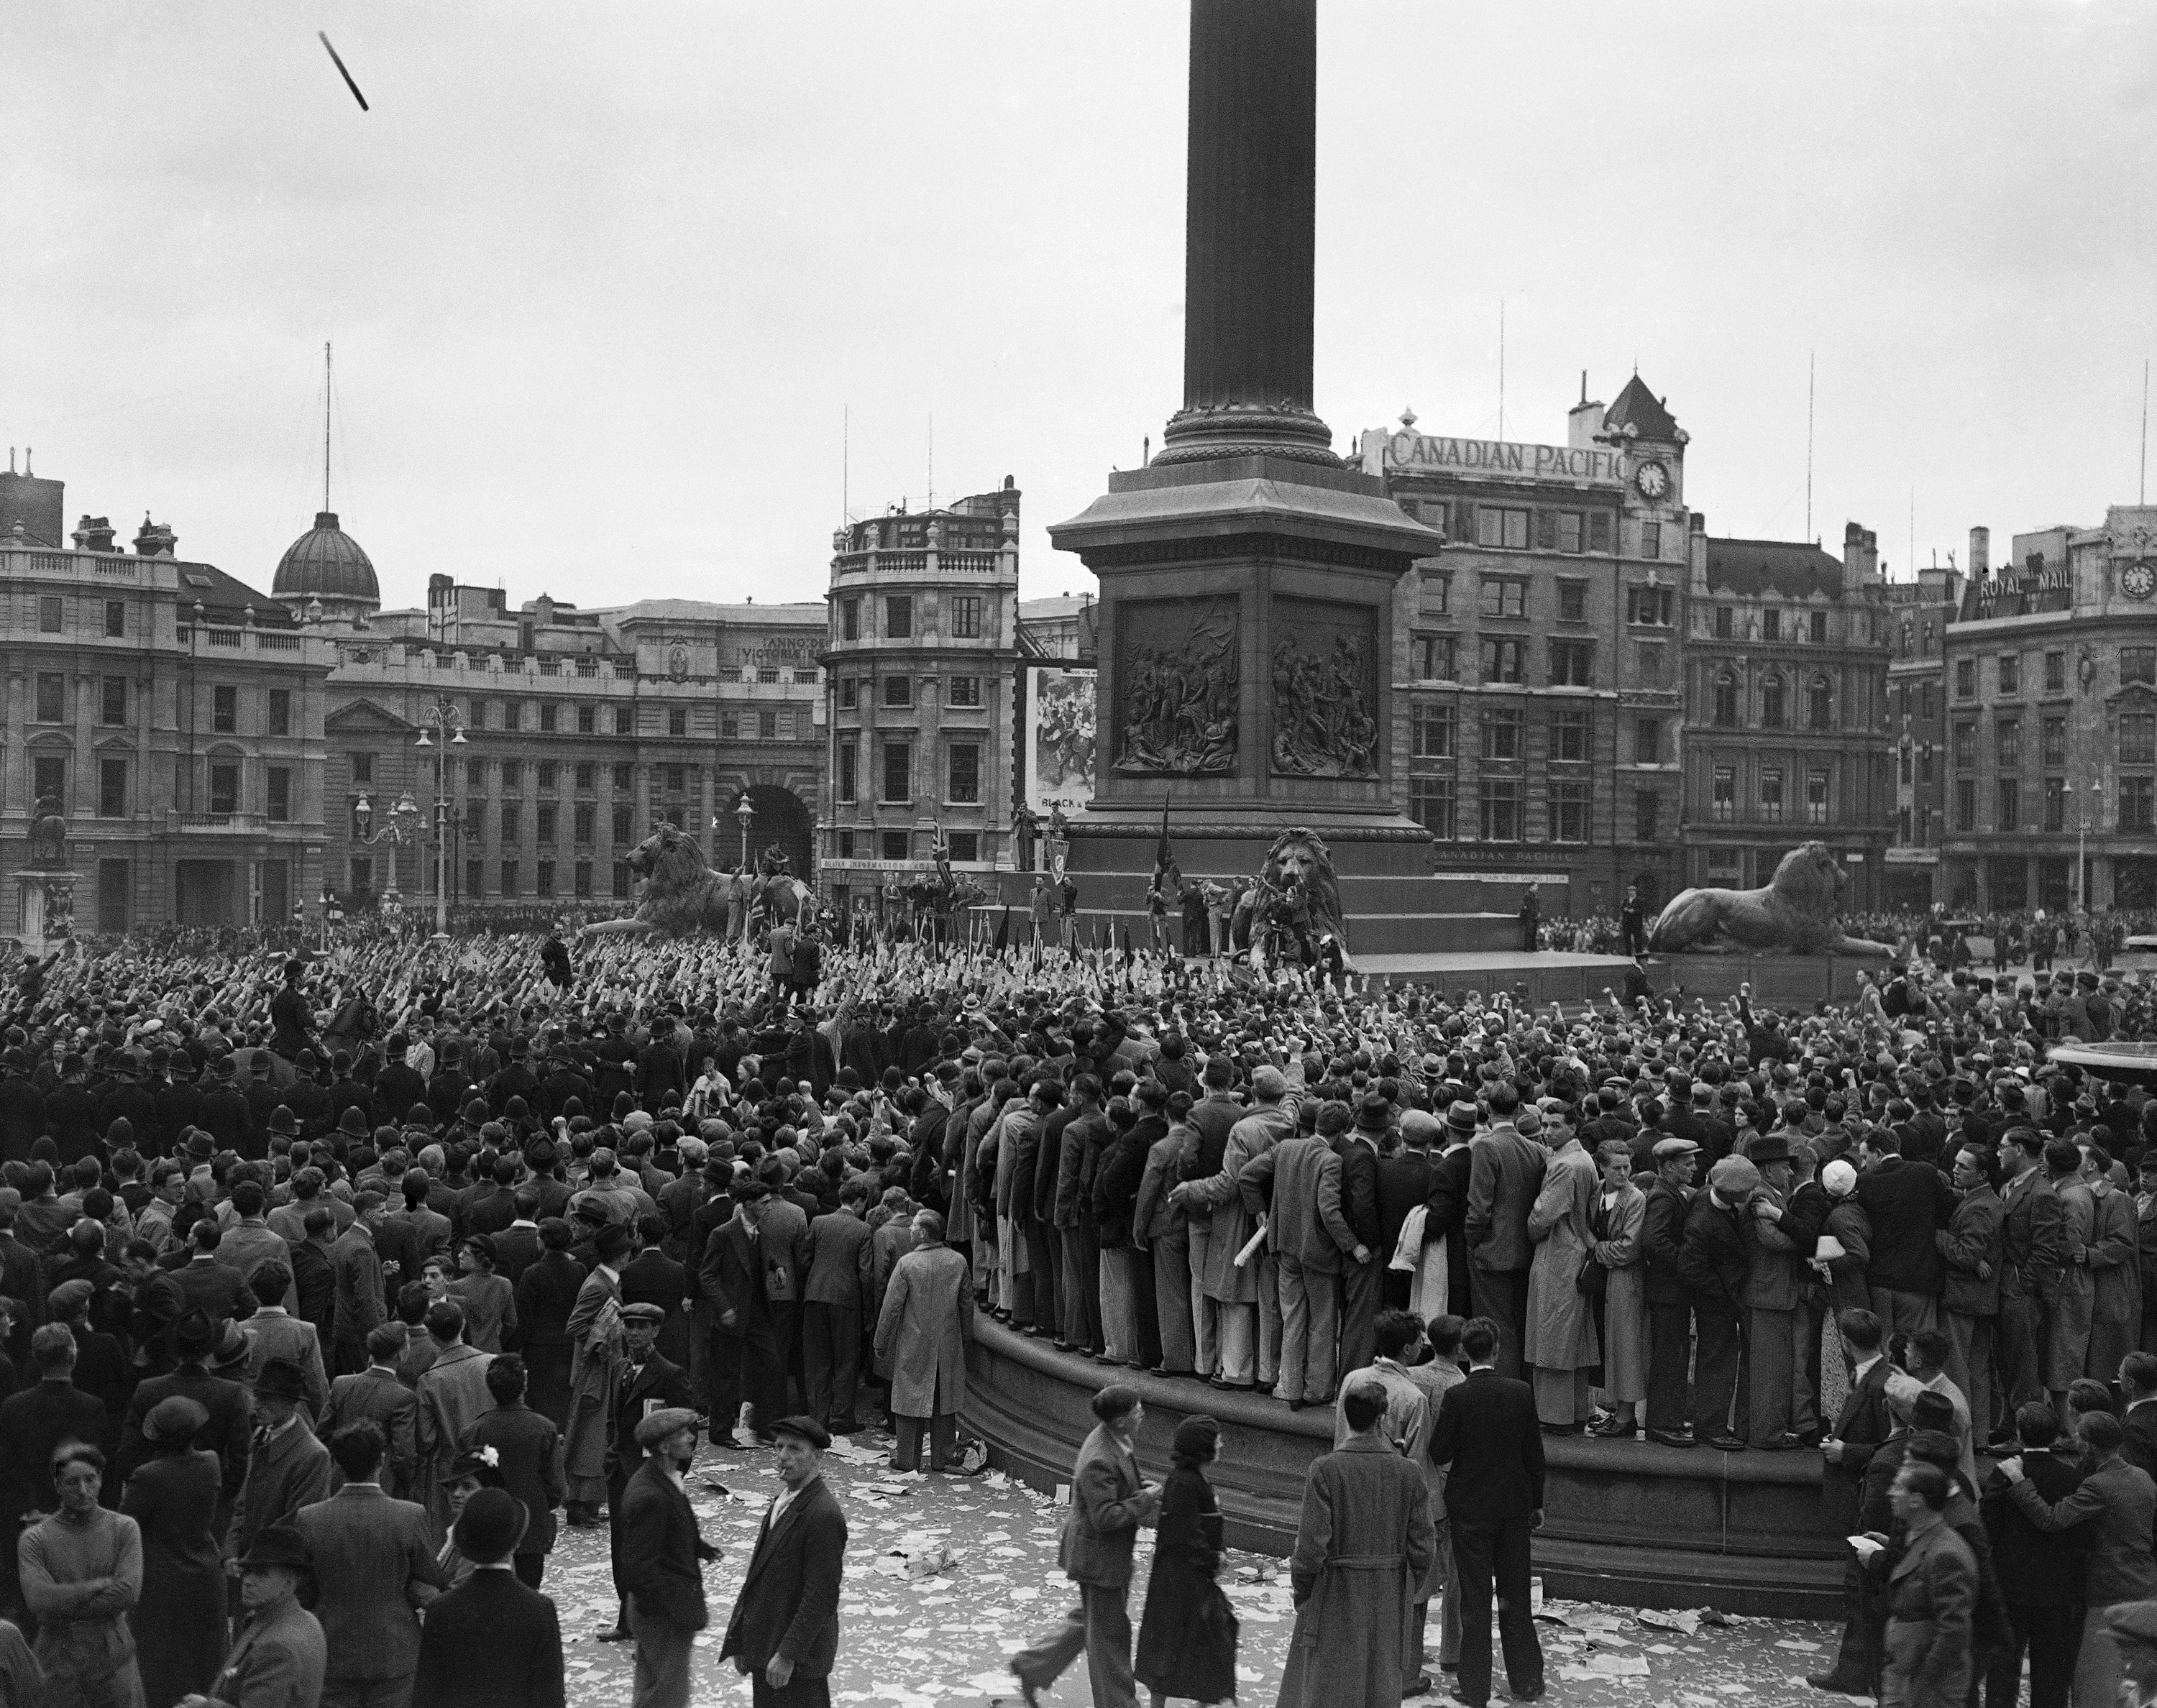 Sir Oswald Mosley's fascist marchers had arrives from Kentish town for their meeting in Trafalgar Square in London on July 4, 1937. On one side of the police cordon communists give the clenched fist salute, while on the other side the fascists' outstretched arms are seen.